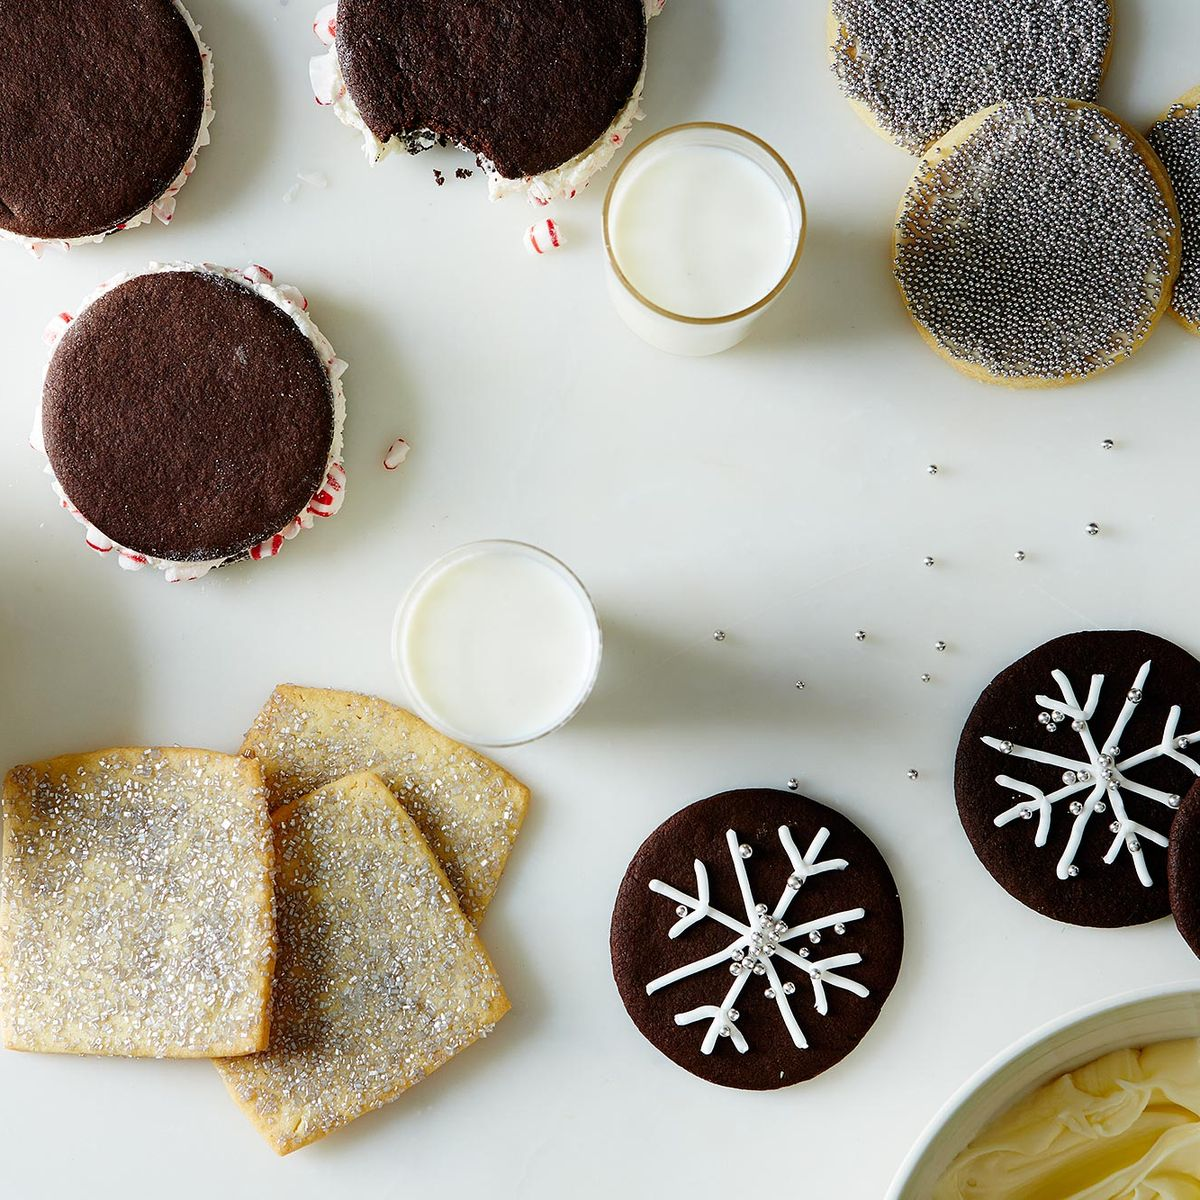 How to Make and Decorate Better Roll-Out Sugar Cookies